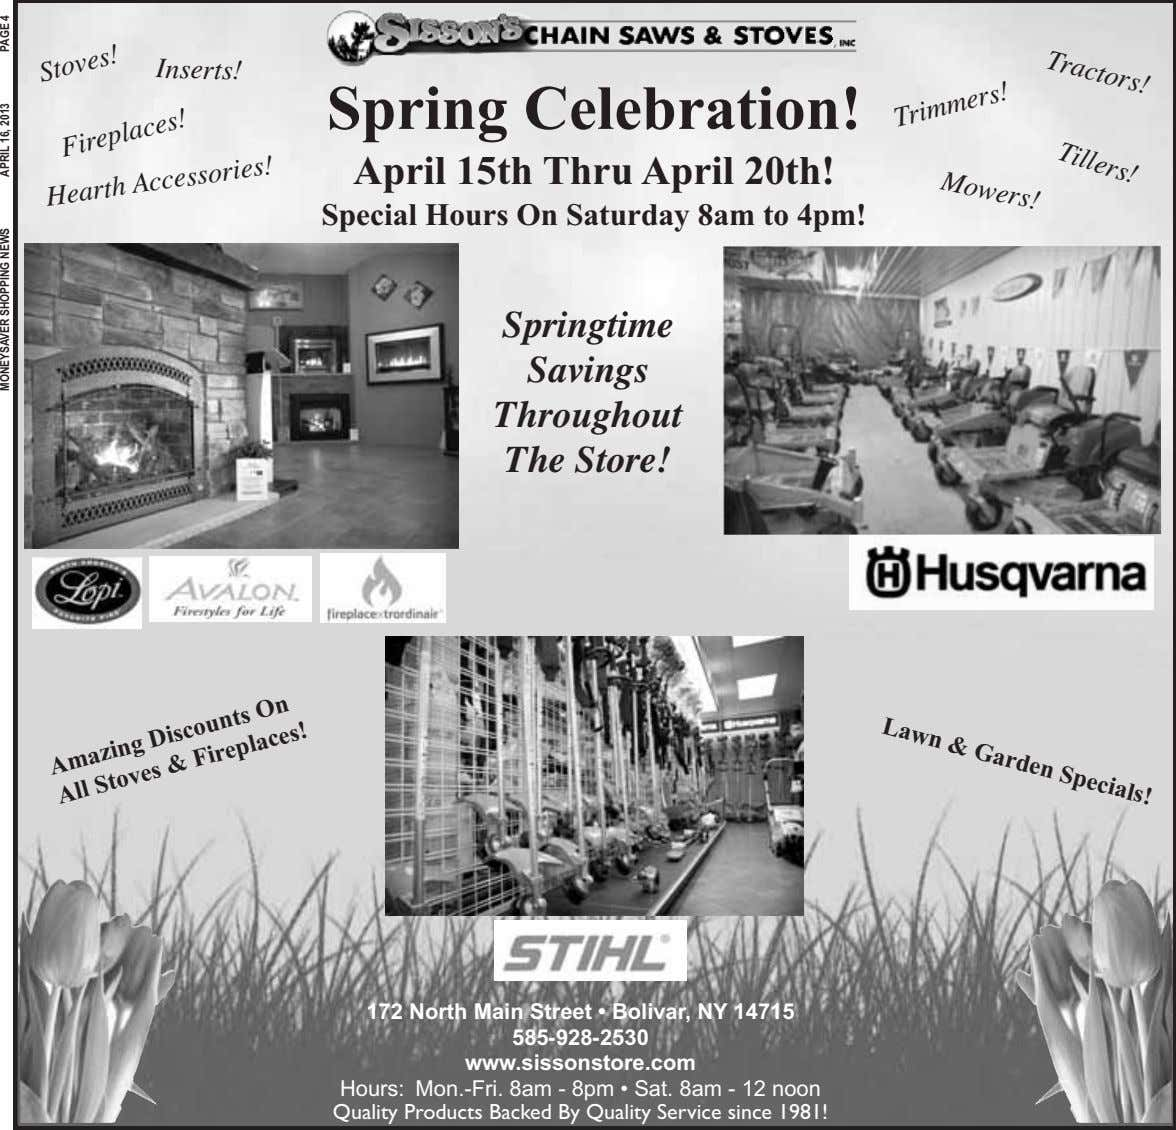 Tractors! Tillers! Mowers! Inserts! Spring Celebration! Stoves! April 15th Thru April 20th! Hearth Accessories!